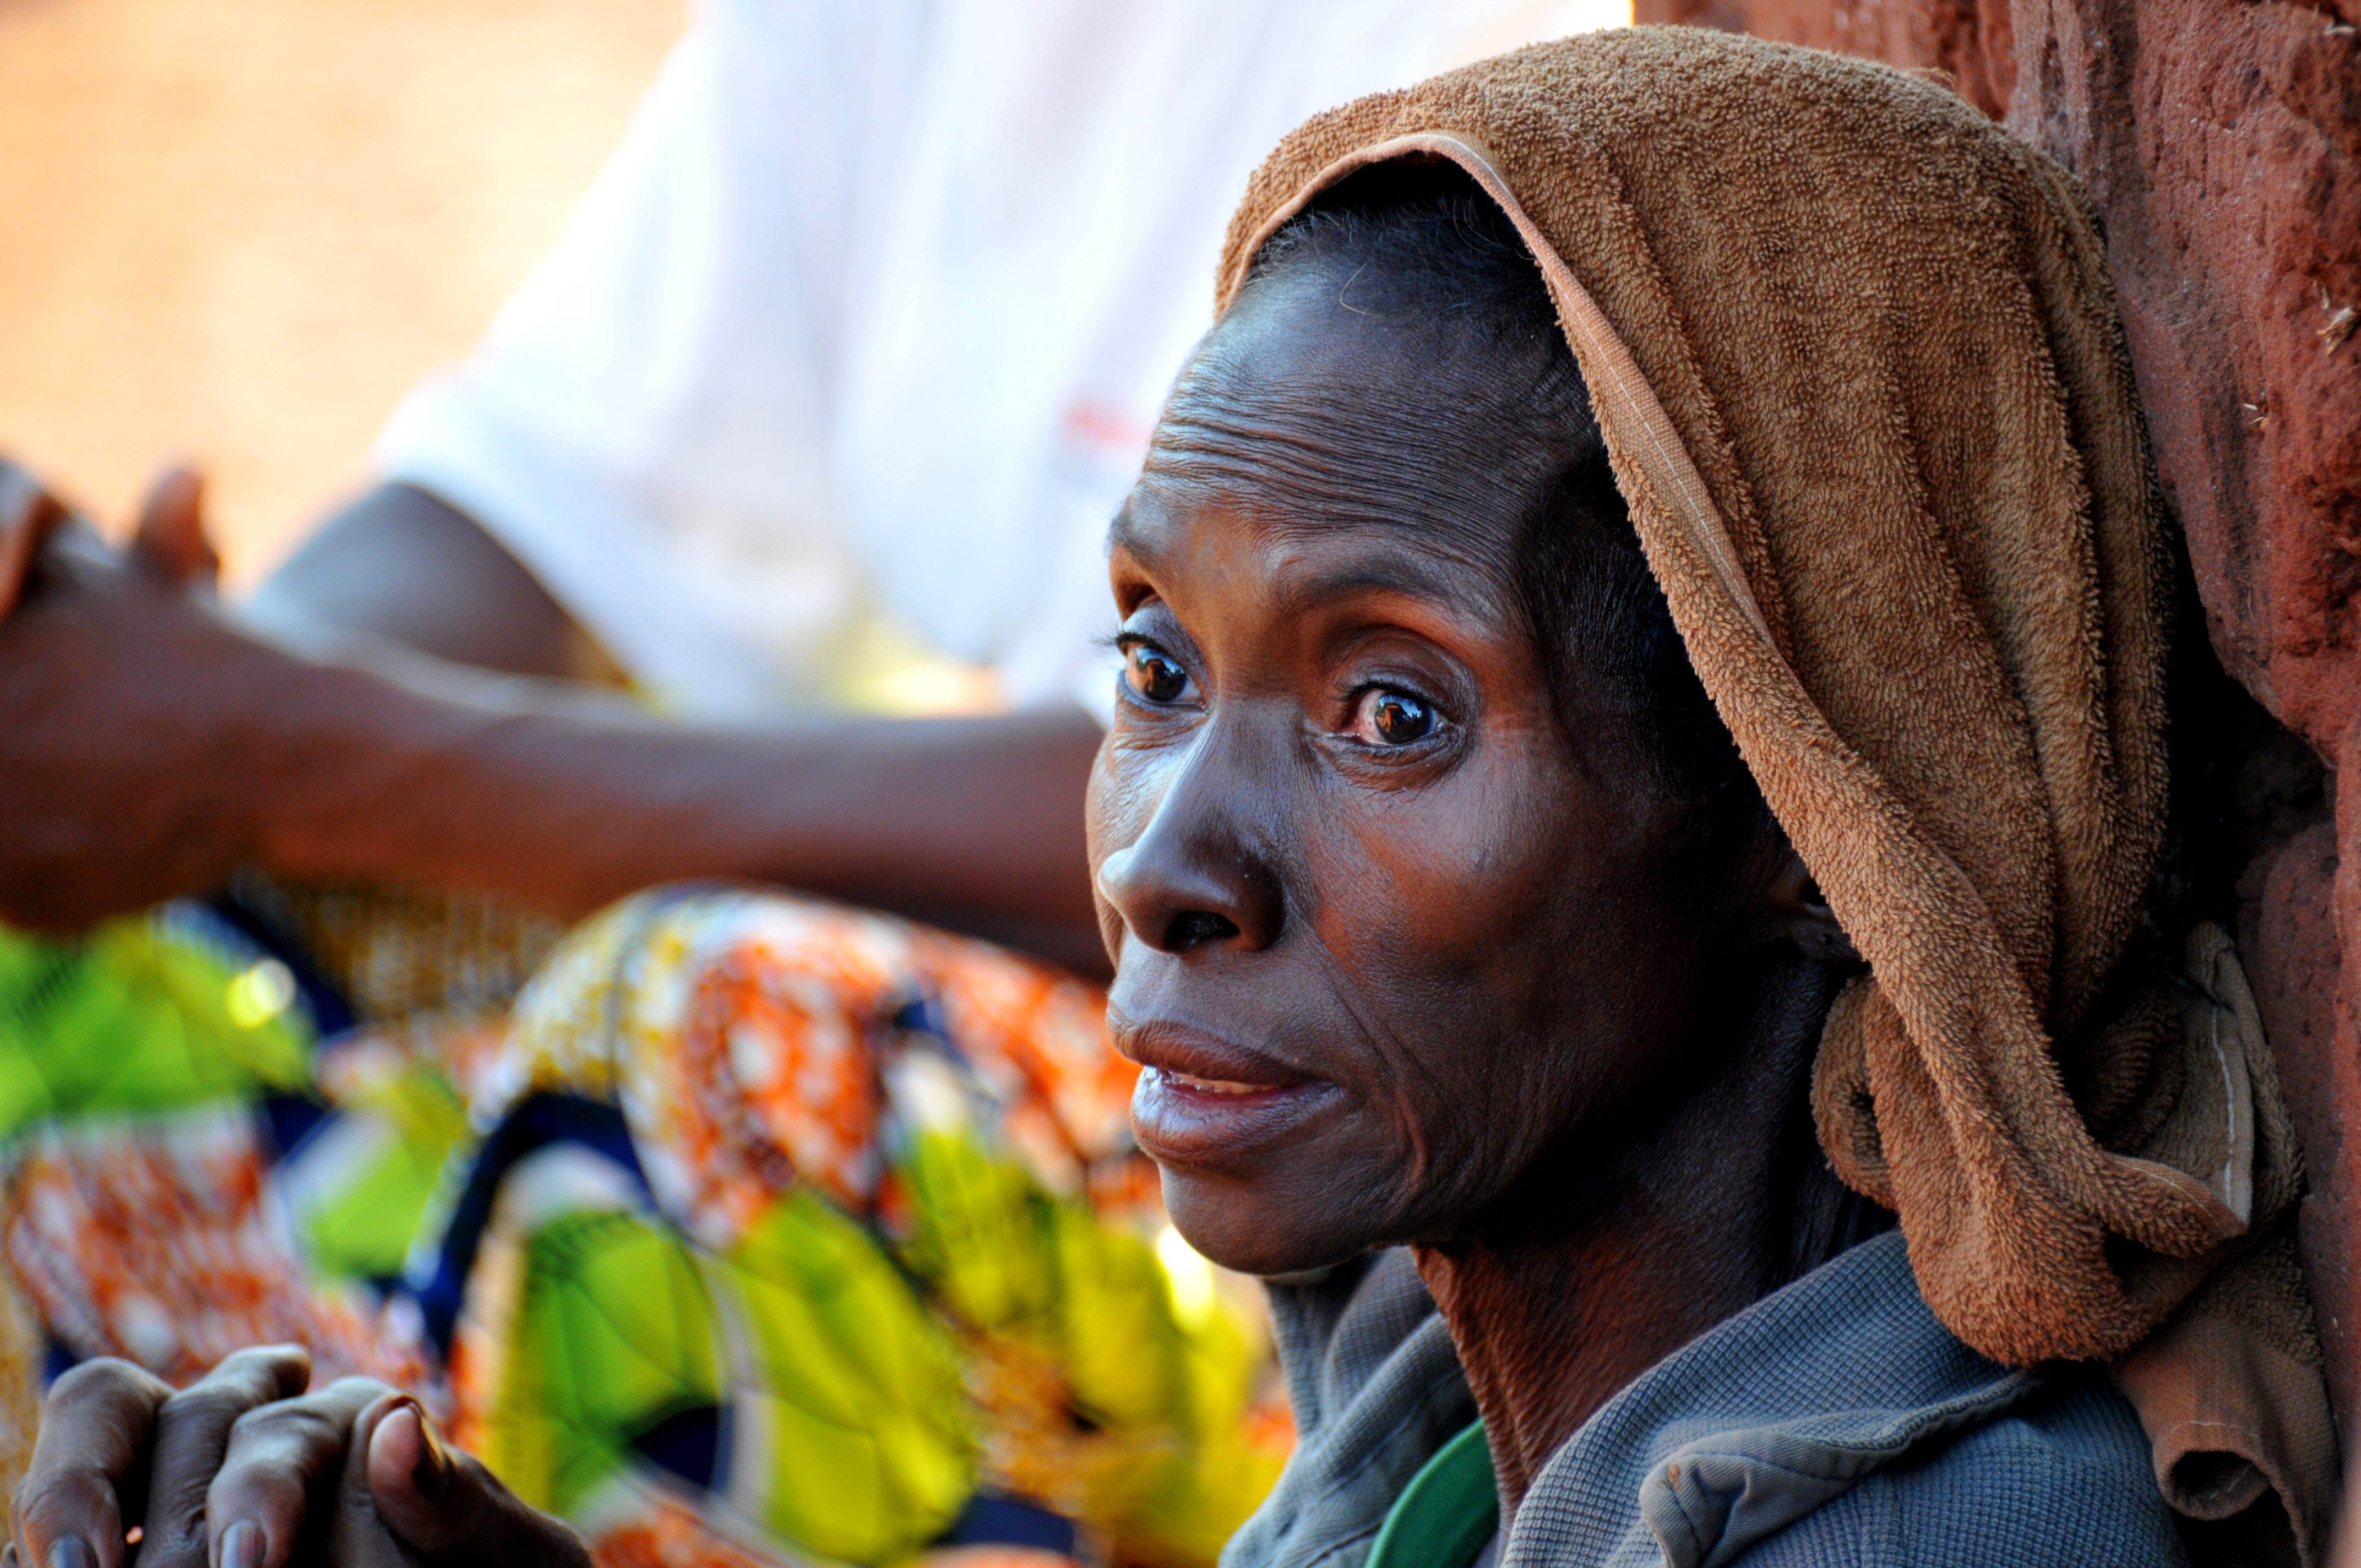 african central republic widow doors open pascal martine woman usa brokenness pope visits hope land seleka killed